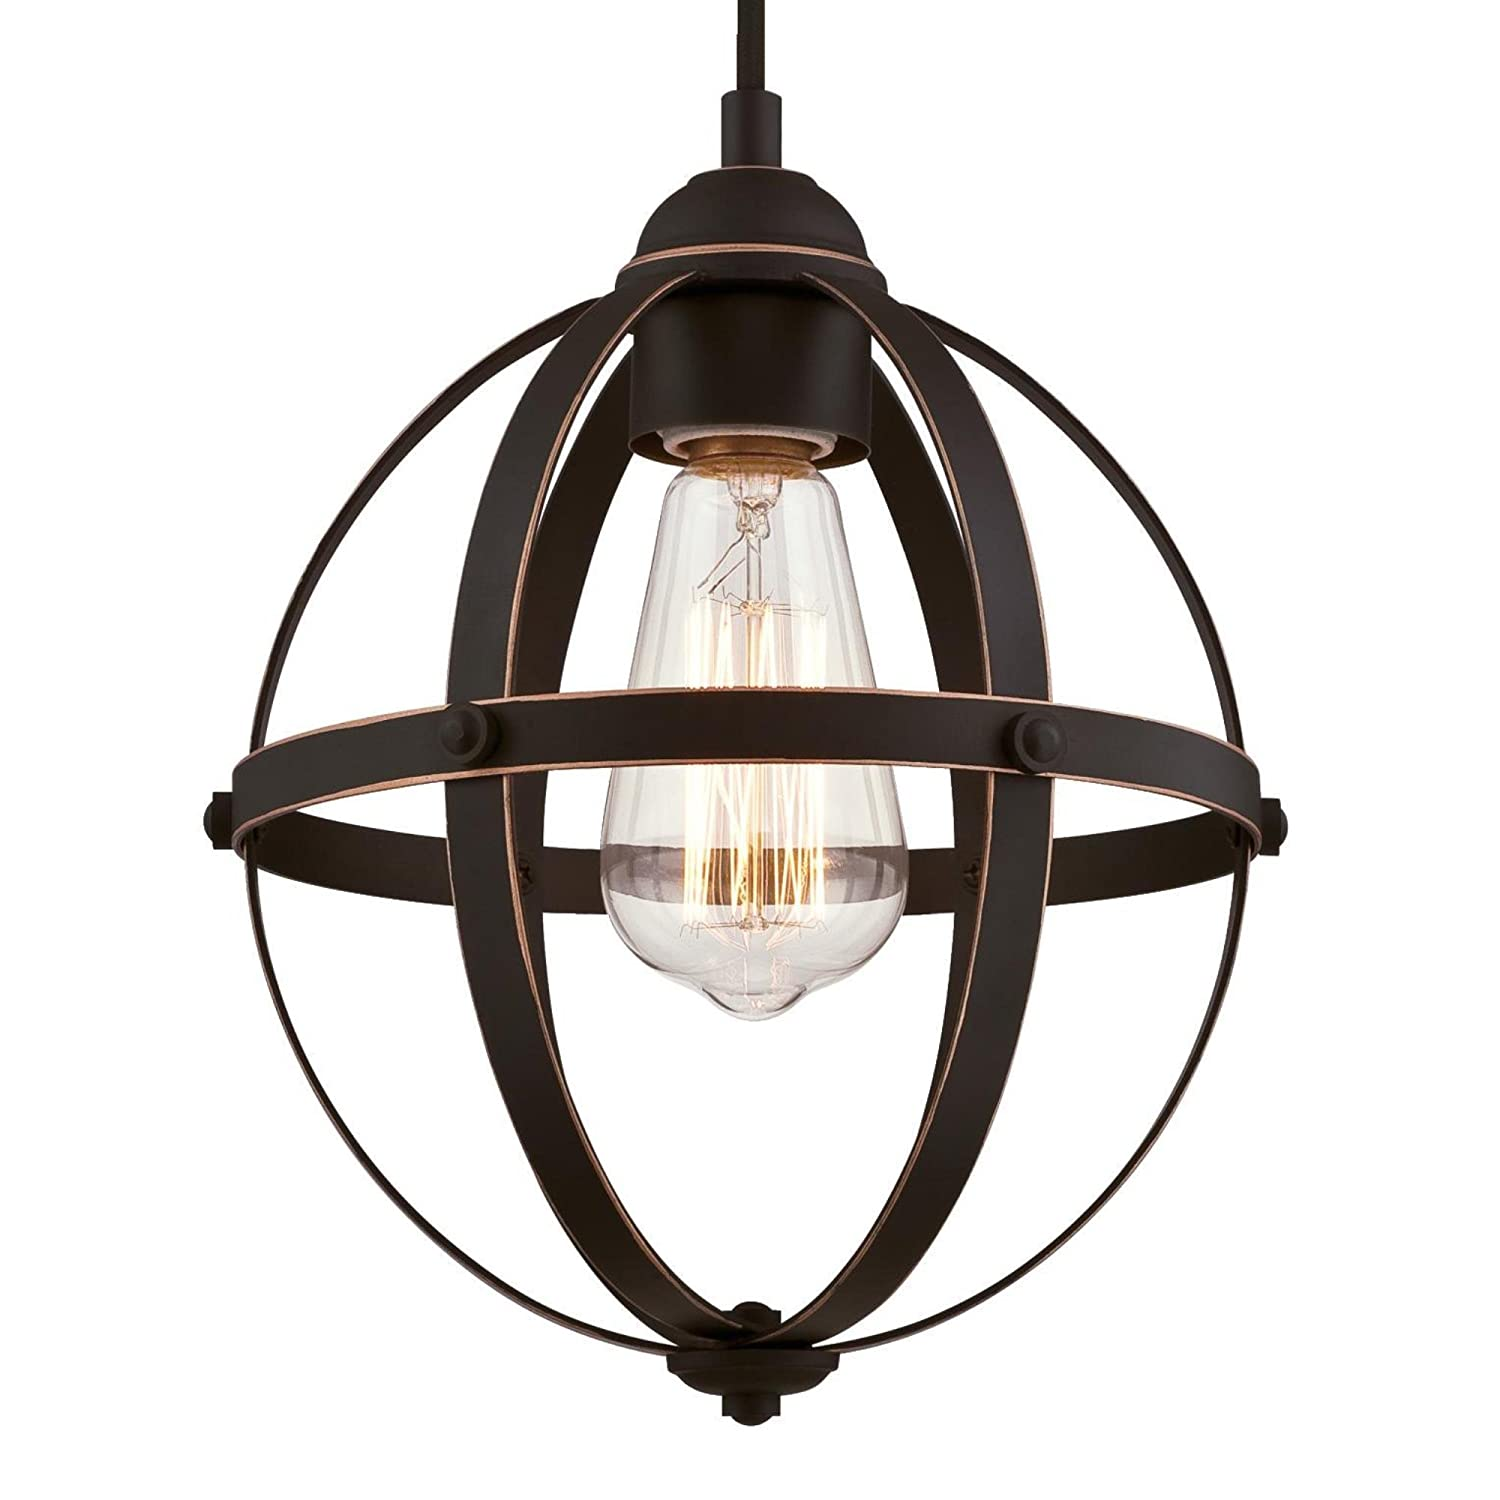 Westinghouse Lighting 6328100 Weston Four-Light Indoor Chandelier, Oil Rubbed Bronze and Washed Copper Finish